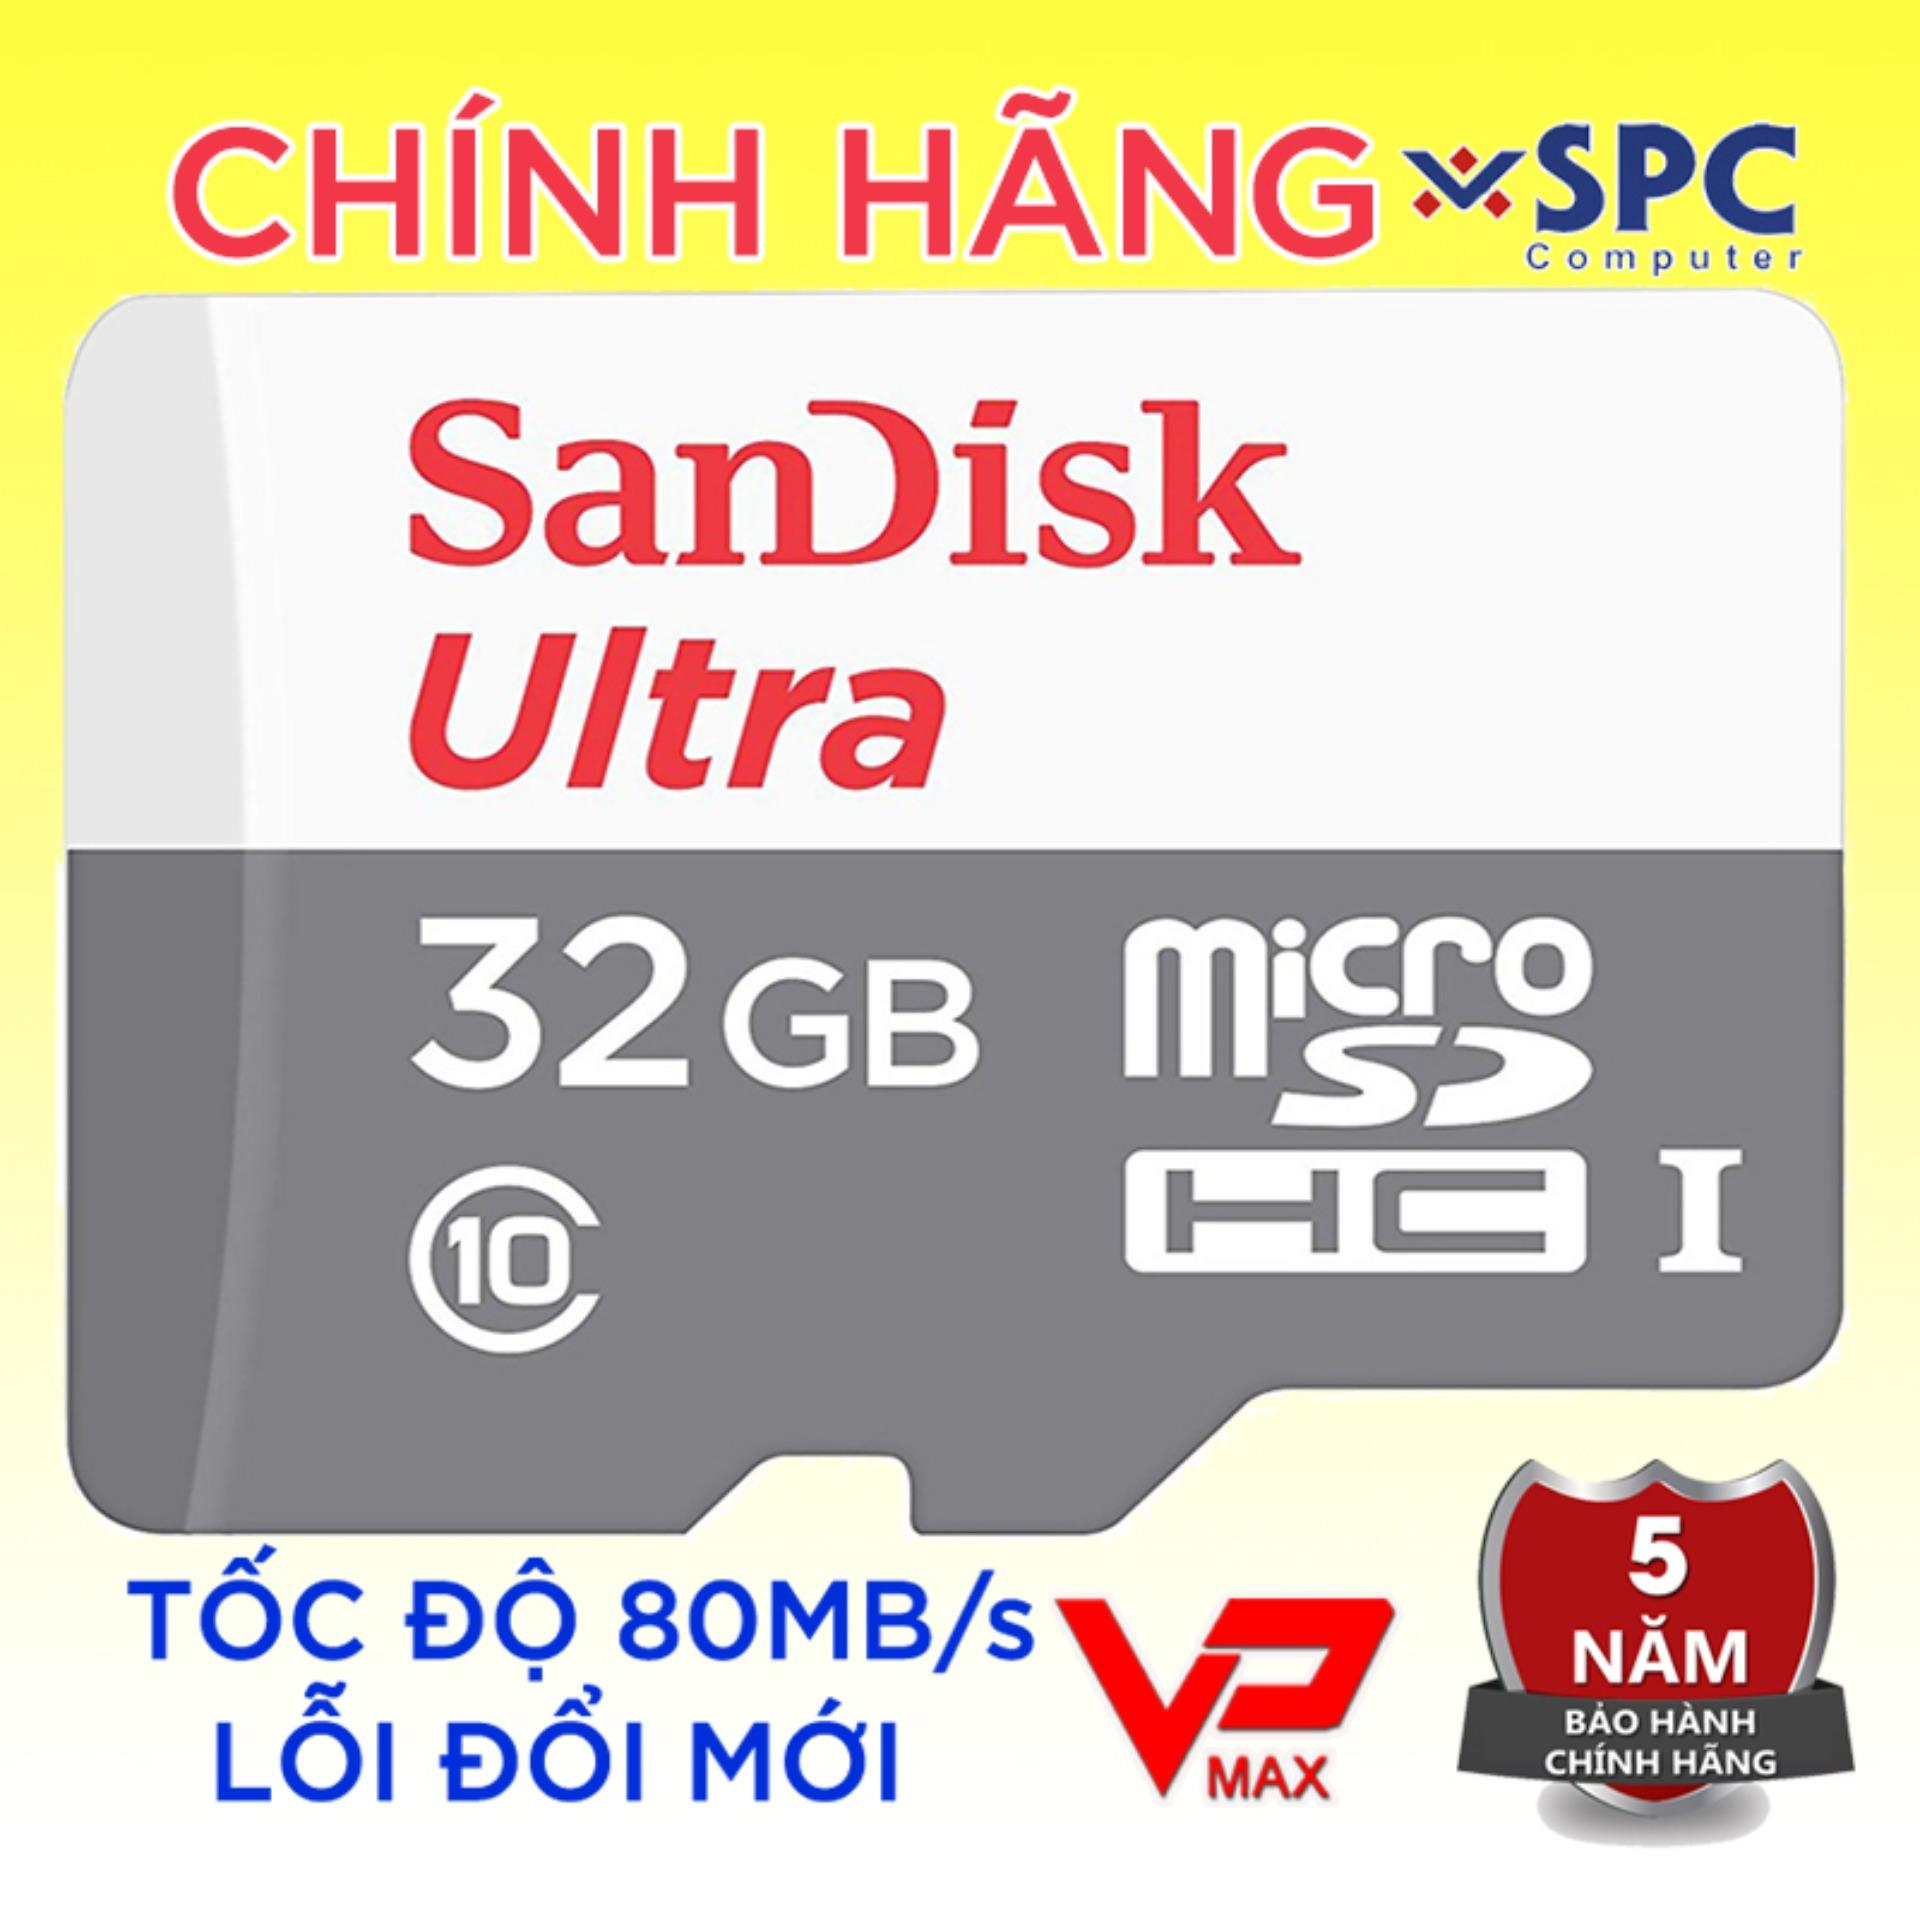 Thẻ nhớ Micro SD 32Gb 16Gb Sandisk Ultra High Speed bh 5 năm